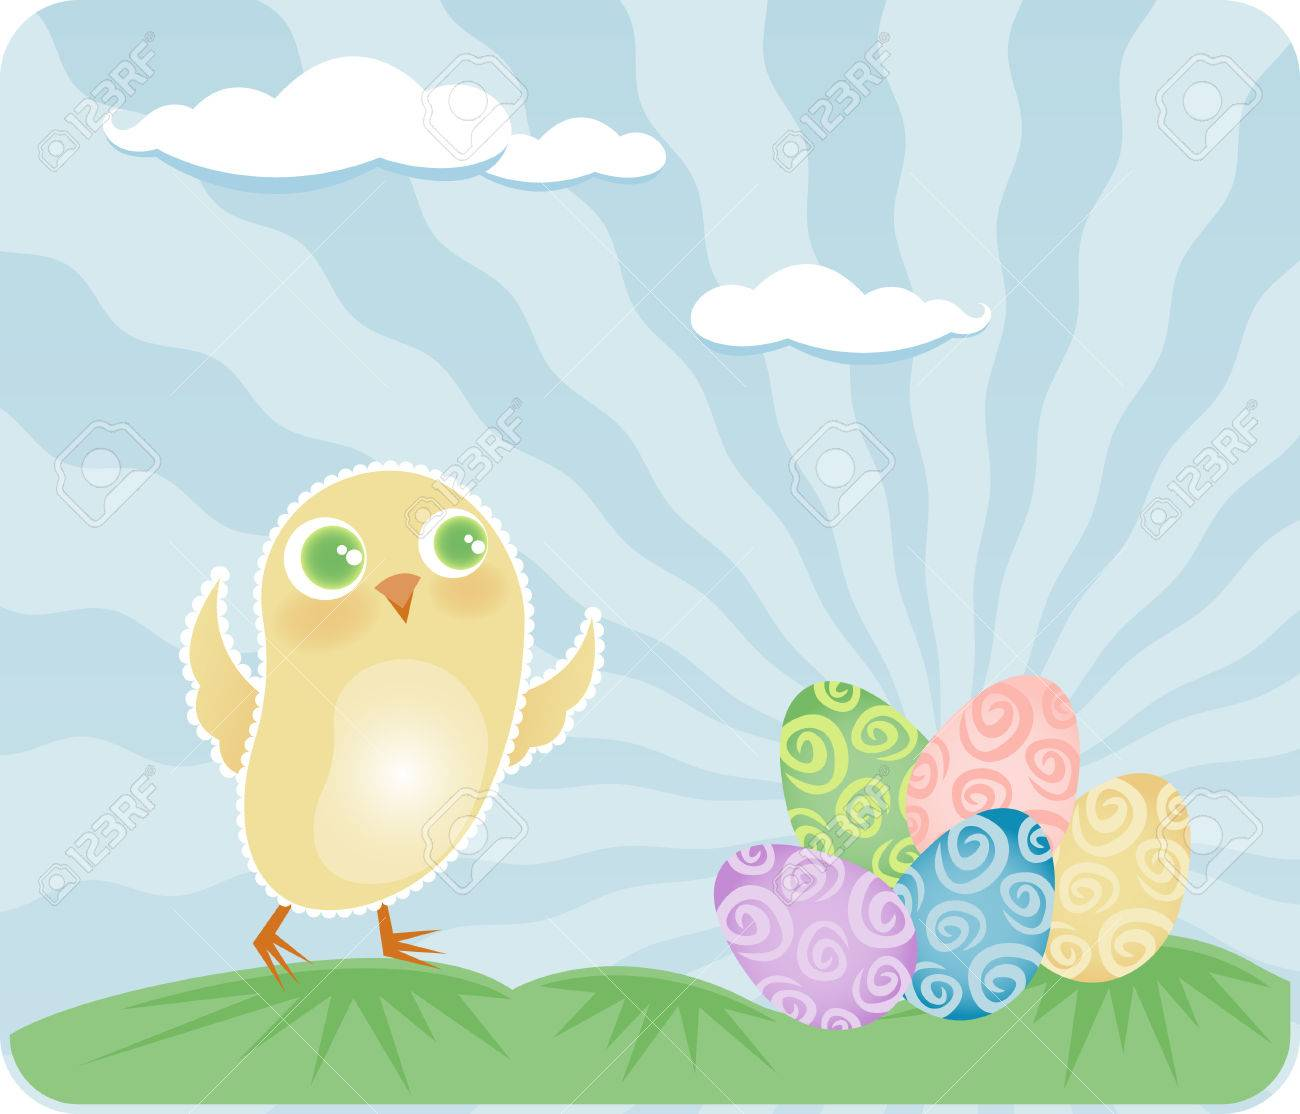 Happy little baby chick finds a colorful pile of decorated eggs on Easter morning Stock Vector - 4855888